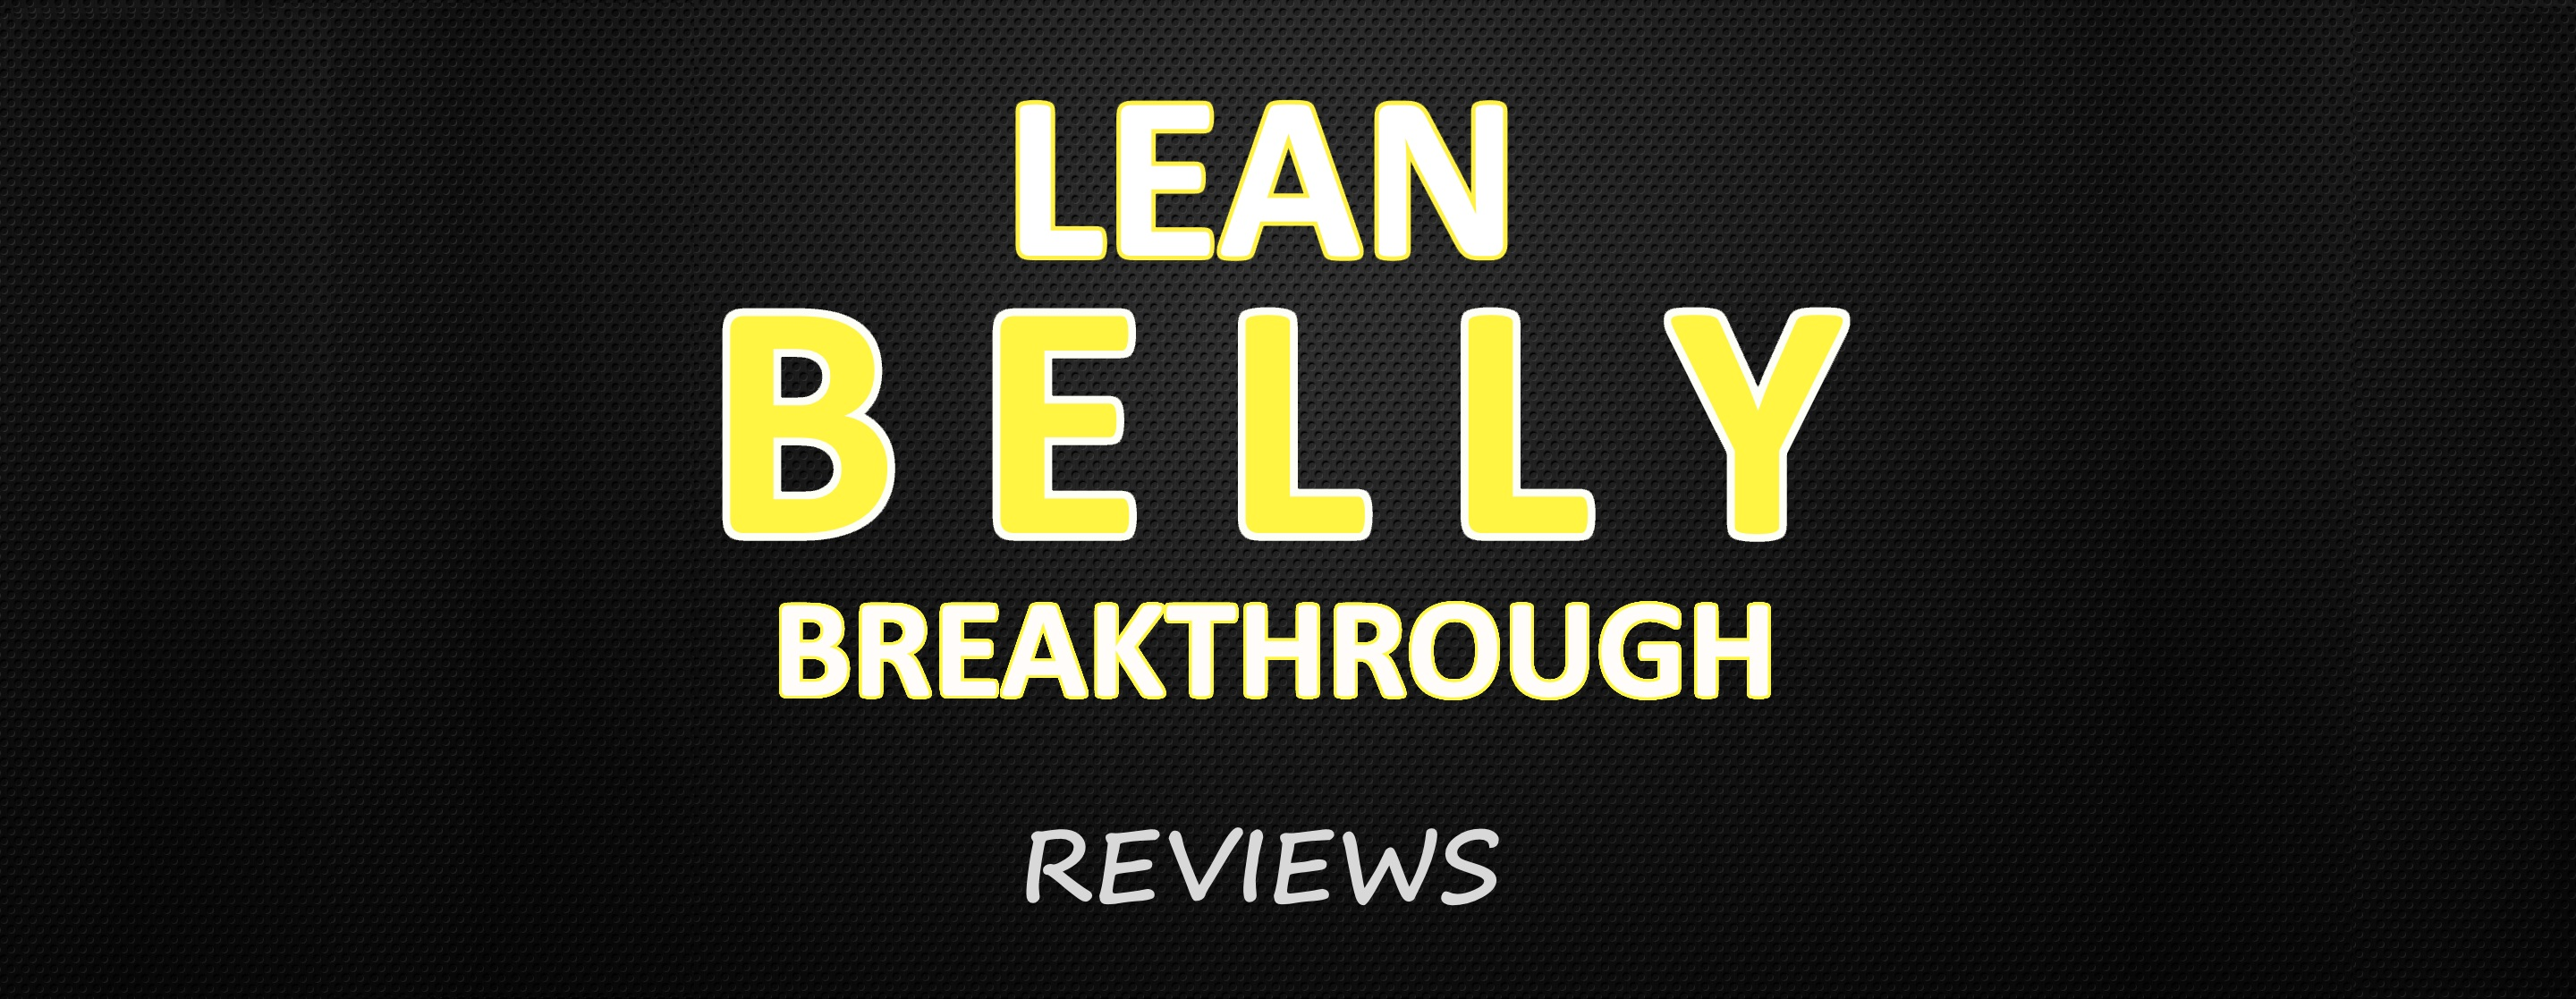 Lean Belly Breakthrough  by Bruce Krahn   Review 2018 Lean Belly Breakthrough Review